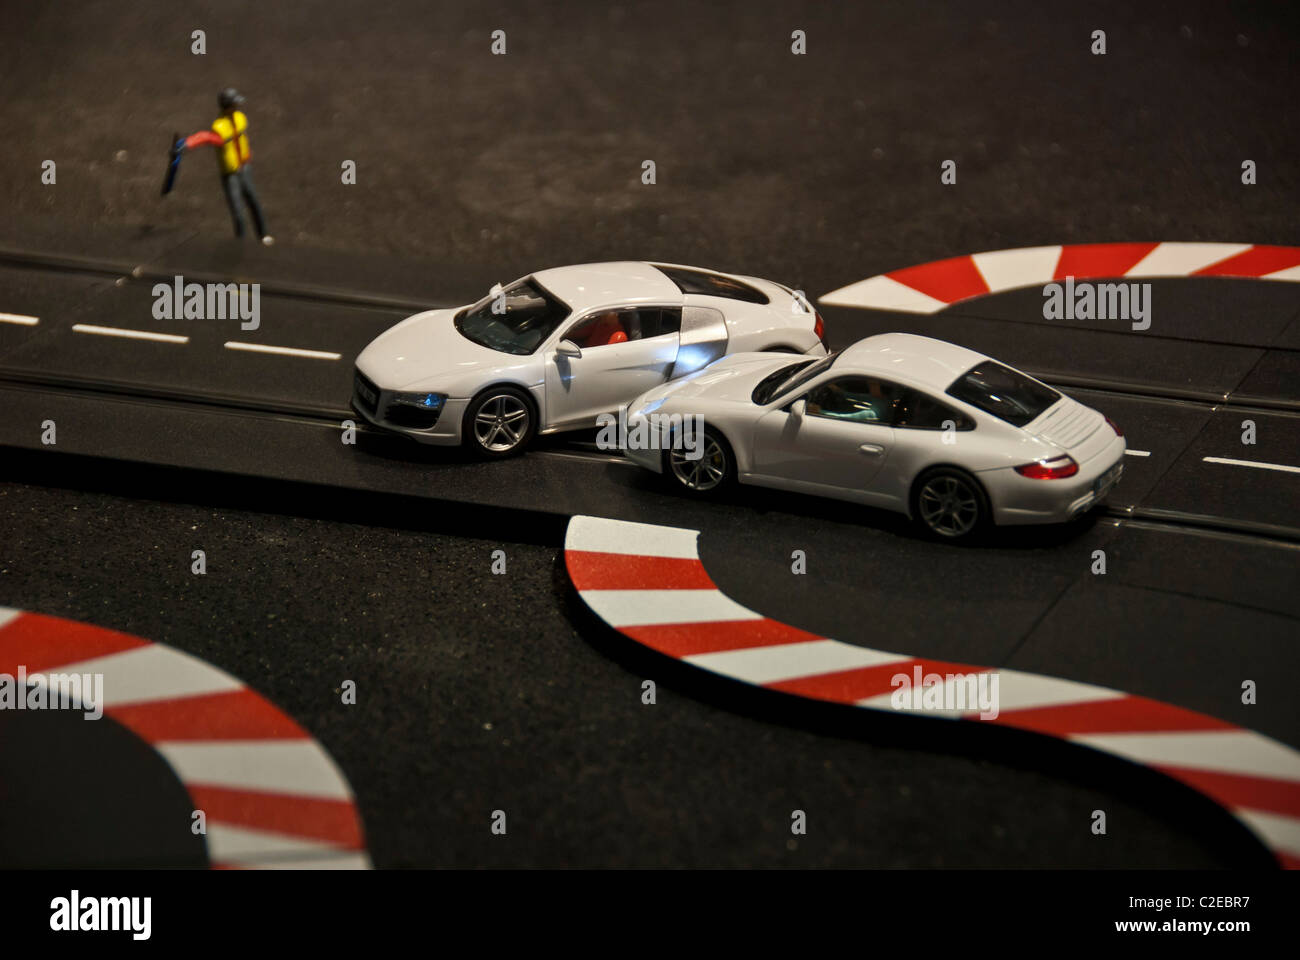 Car accident in a model racetrack. Two race cars crash during a ...